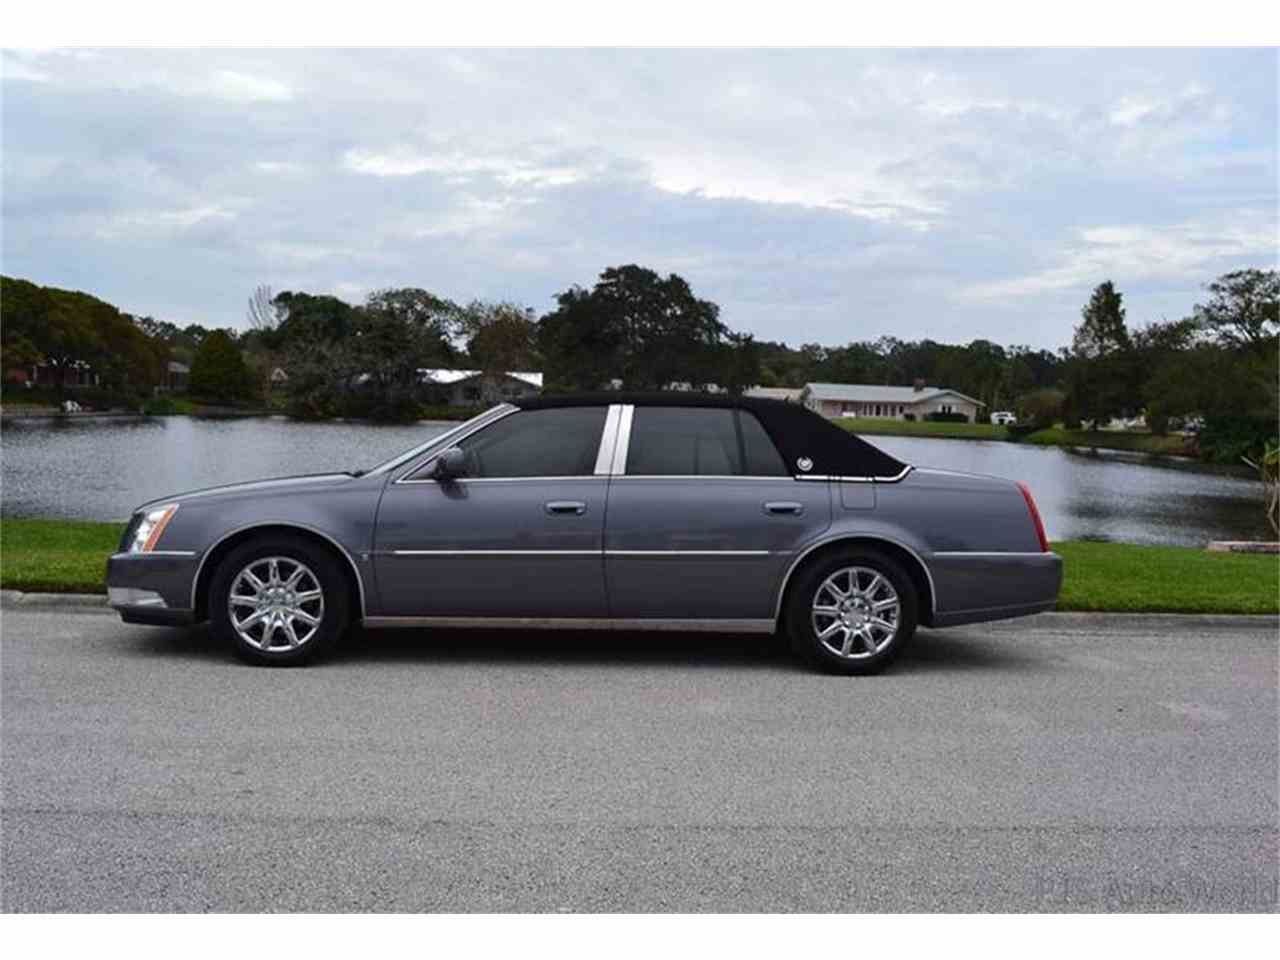 sale of certificate on auctions title carfinder cadillac south ga left view copart auto in for online dts en lot atlanta burgundy